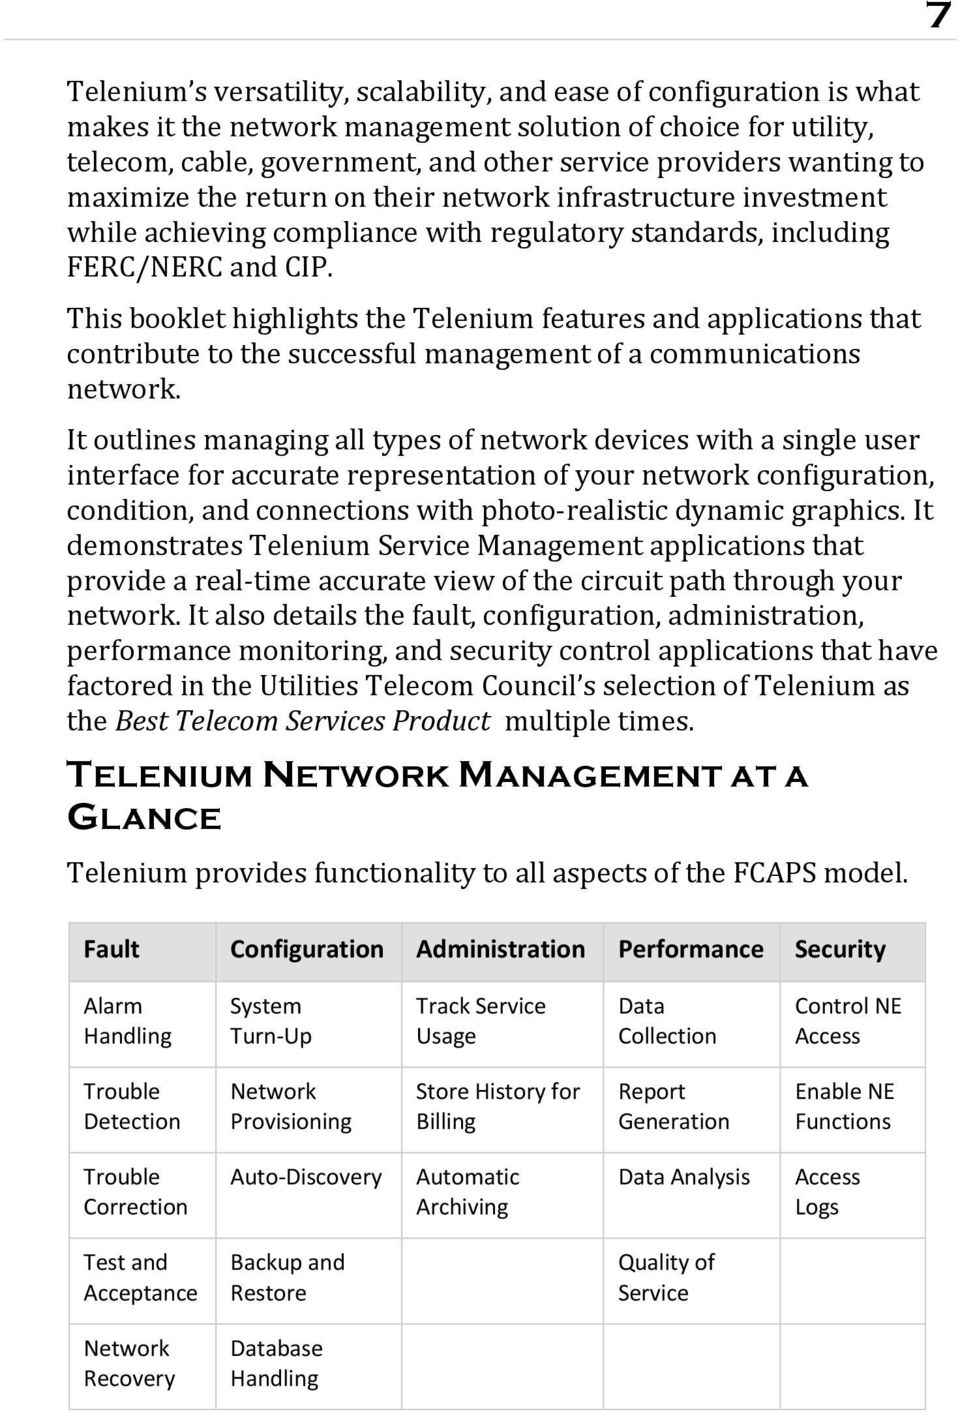 This booklet highlights the Telenium features and applications that contribute to the successful management of a communications network.